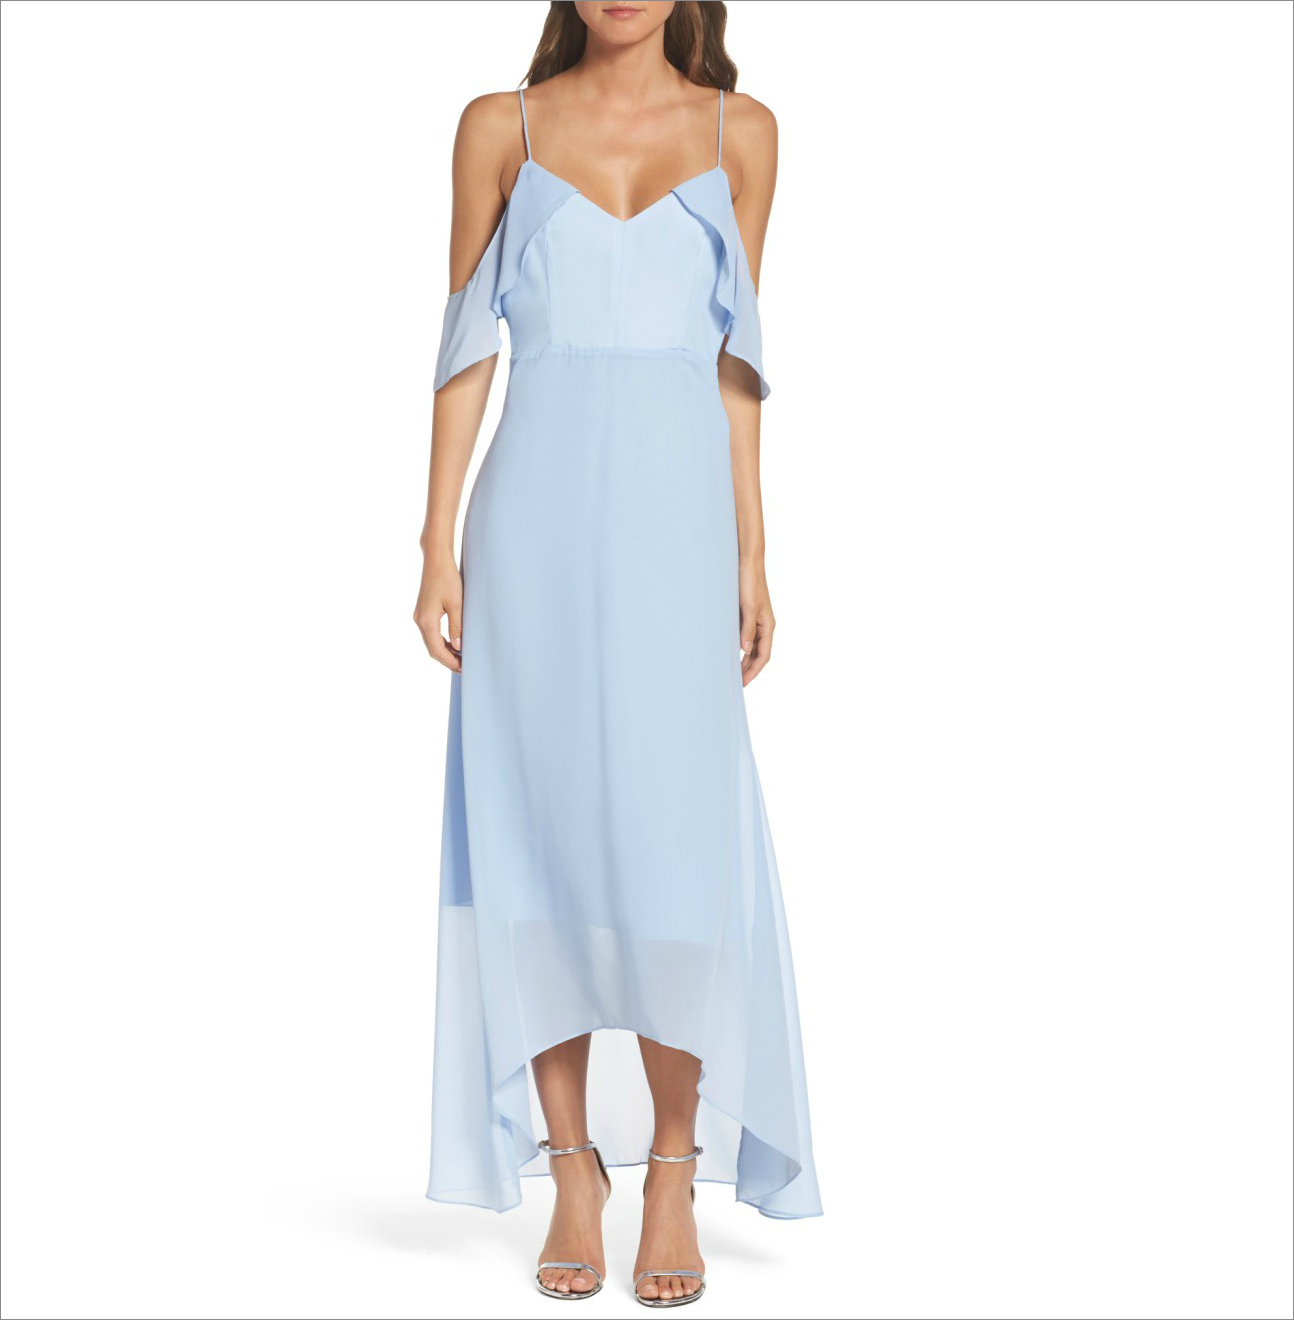 Cold shoulder light blue long bridesmaid dress ideas nordstrom under 150